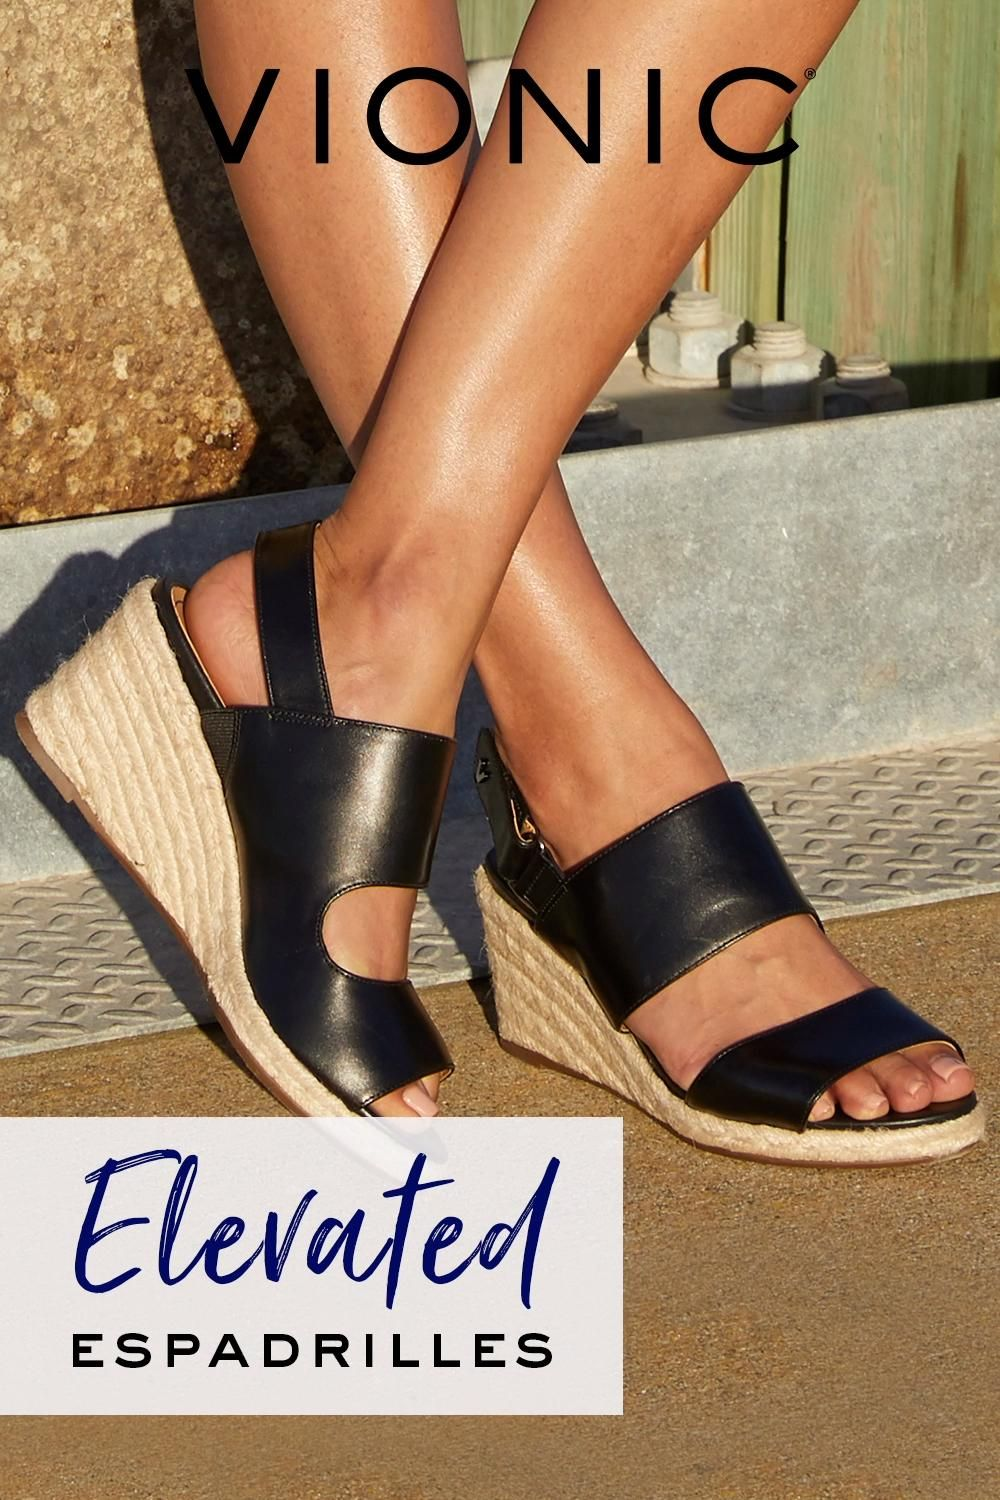 Women's Comfortable Sandals with Arch Support